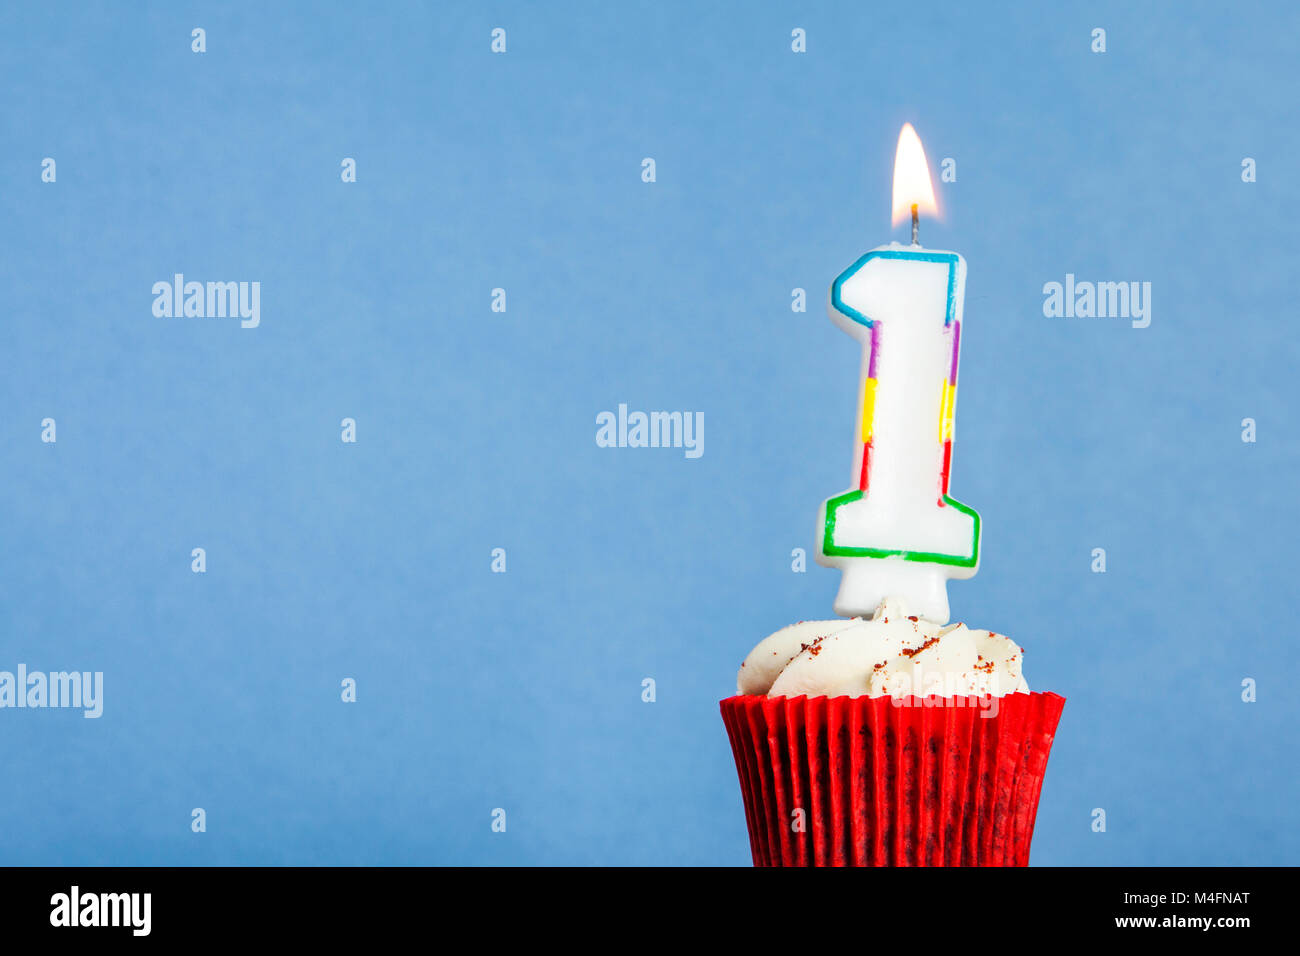 Number 1 Birthday Candle In A Cupcake Against Blue Background